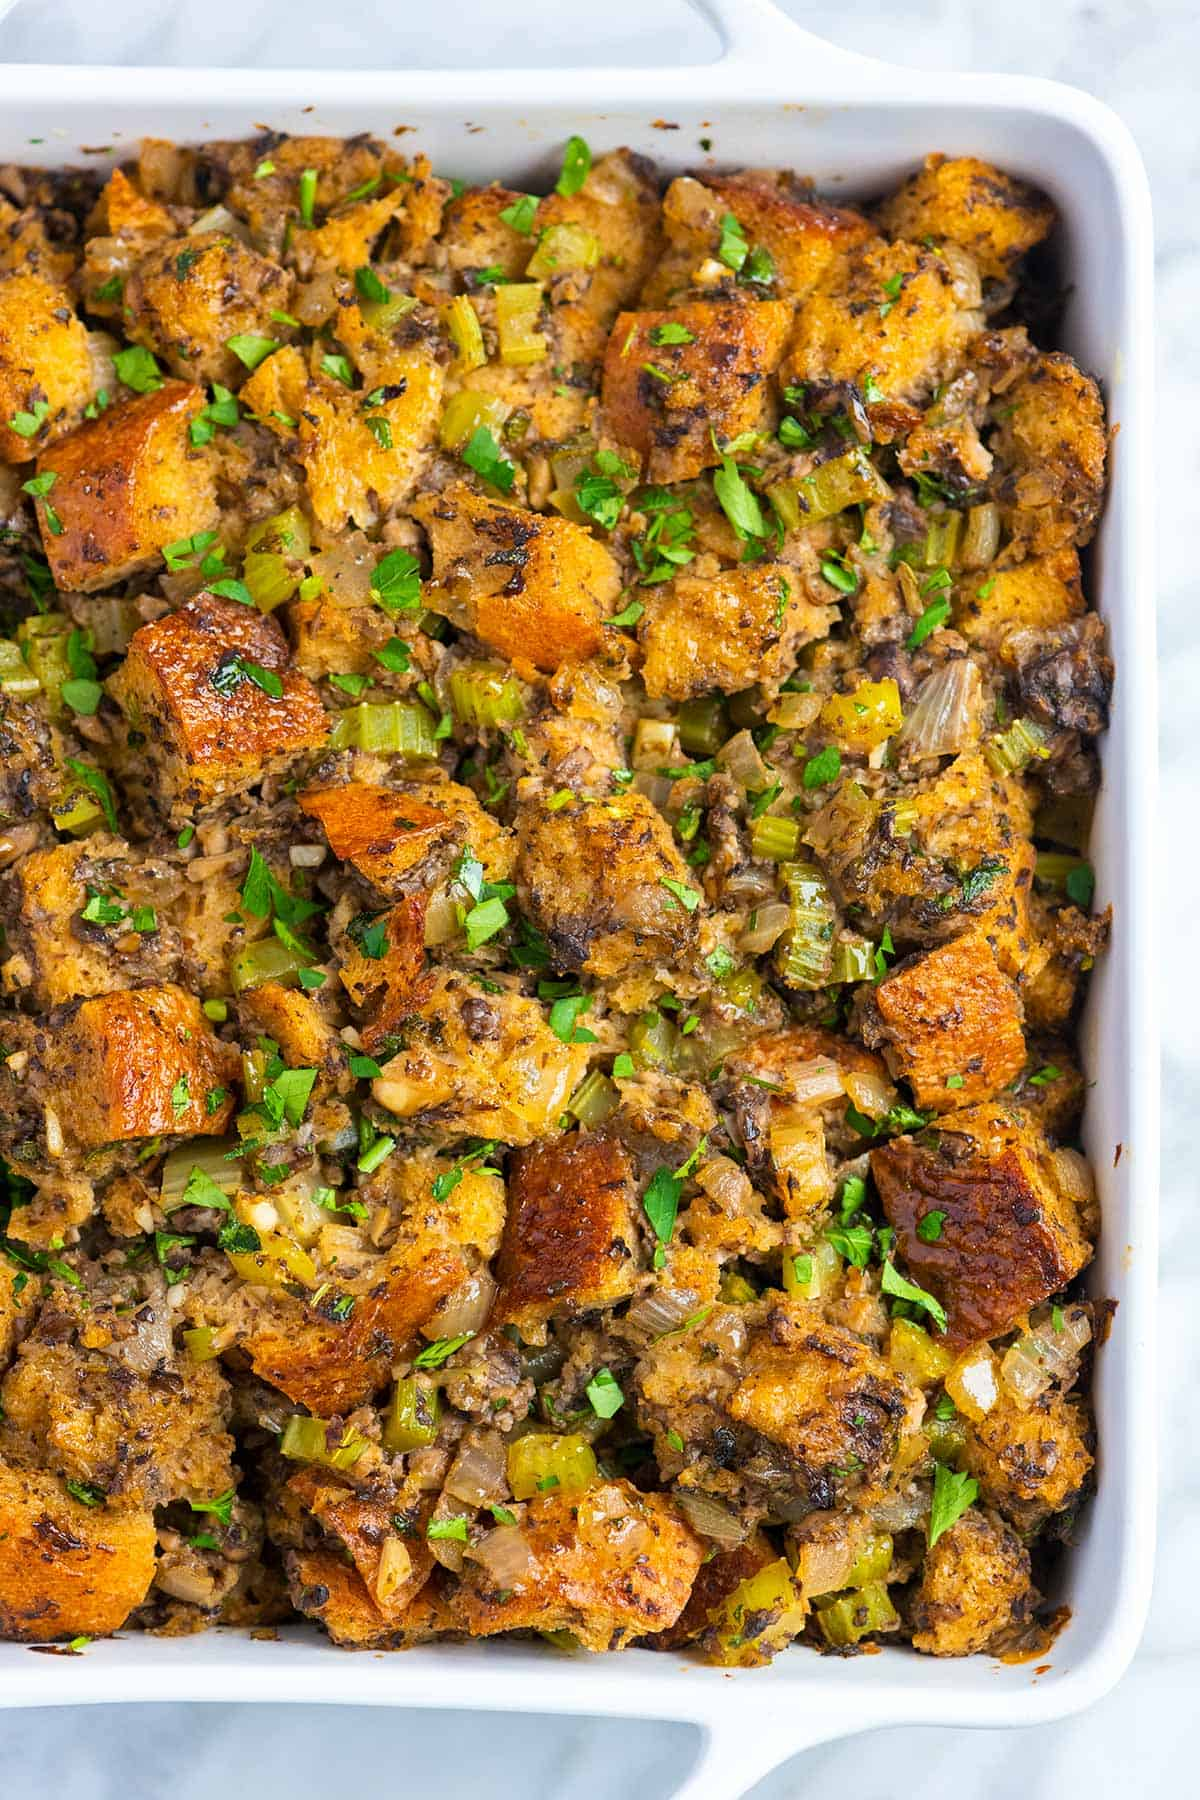 Loaded with fresh mushrooms, onions, sage, and thyme this homemade mushroom stuffing is deeply flavorful and absolutely delicious. The stuffing is savory and soft in the middle, and perfectly crisp on top. It is naturally vegan and you can make it in advance.